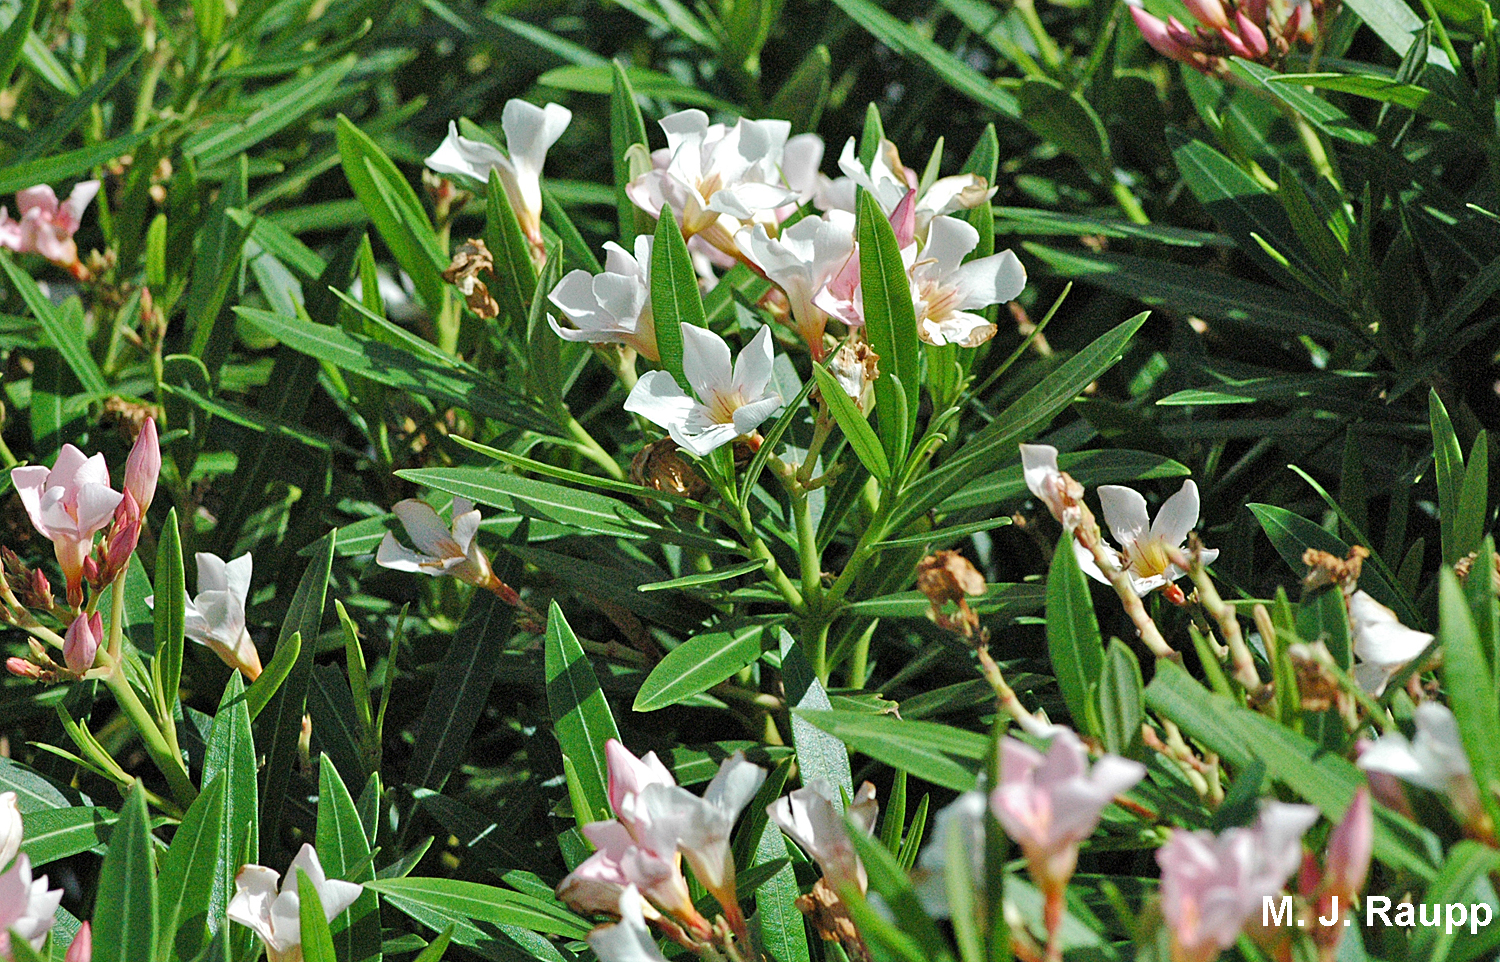 """When colonists brought oleander to the New World, this plant of Mediterranean origin became an important larval food source for the polka-dot wasp moth.     Normal   0           false   false   false     EN-US   X-NONE   X-NONE                                                                                                                                                                                                                                                                                                                                                                    /* Style Definitions */  table.MsoNormalTable {mso-style-name:""""Table Normal""""; mso-tstyle-rowband-size:0; mso-tstyle-colband-size:0; mso-style-noshow:yes; mso-style-priority:99; mso-style-parent:""""""""; mso-padding-alt:0in 5.4pt 0in 5.4pt; mso-para-margin-top:0in; mso-para-margin-right:0in; mso-para-margin-bottom:10.0pt; mso-para-margin-left:0in; line-height:115%; mso-pagination:widow-orphan; font-size:11.0pt; font-family:""""Calibri"""",""""sans-serif""""; mso-ascii-font-family:Calibri; mso-ascii-theme-font:minor-latin; mso-hansi-font-family:Calibri; mso-hansi-theme-font:minor-latin;}"""